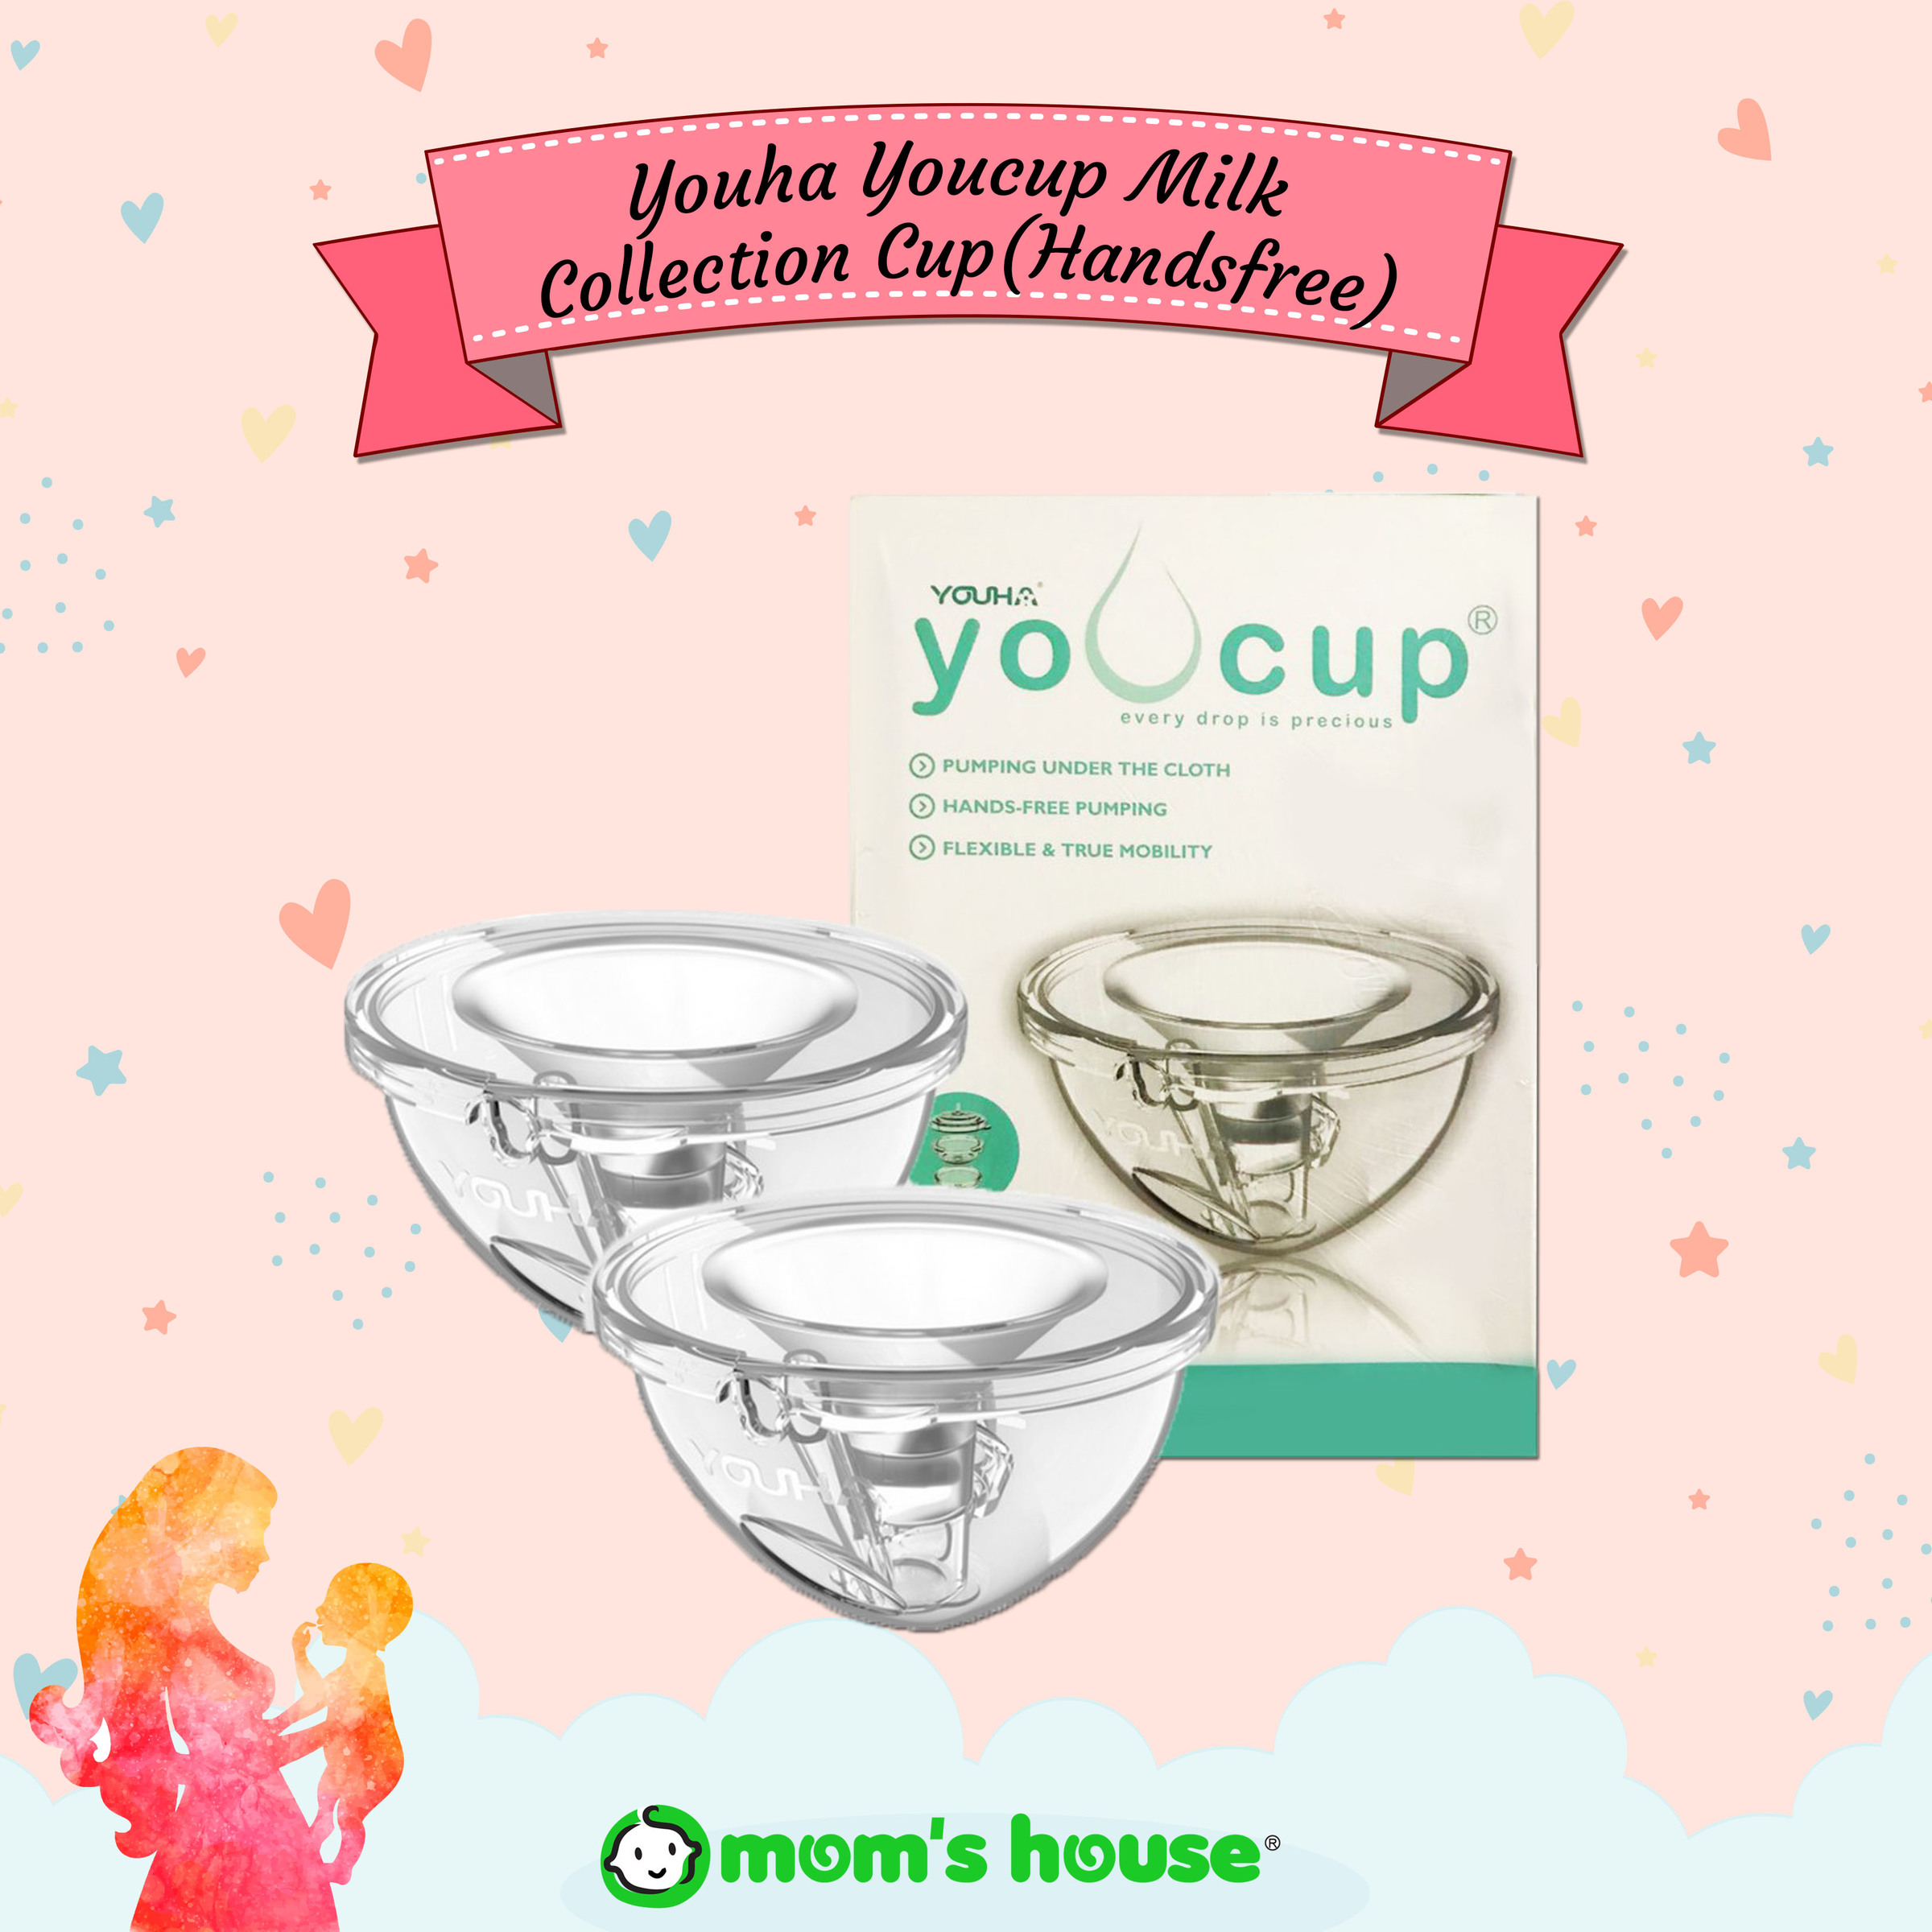 Youha Youcup Milk Collection Cup(Handsfree).jpg